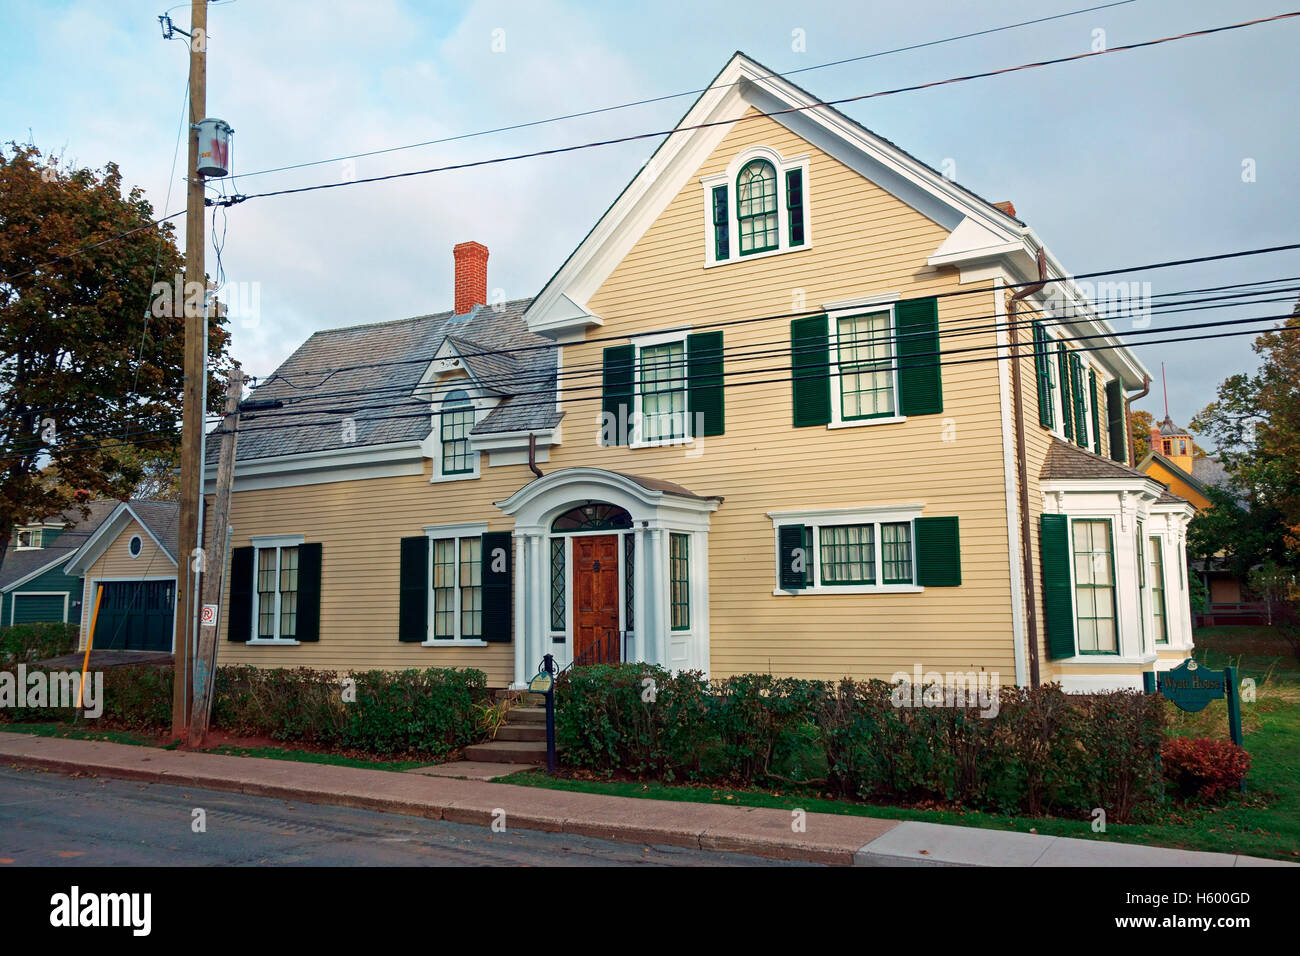 The Wyatt Historic House at 85 Spring Street is a Designated Heritage Building in Summerside, Prince Edward island, - Stock Image